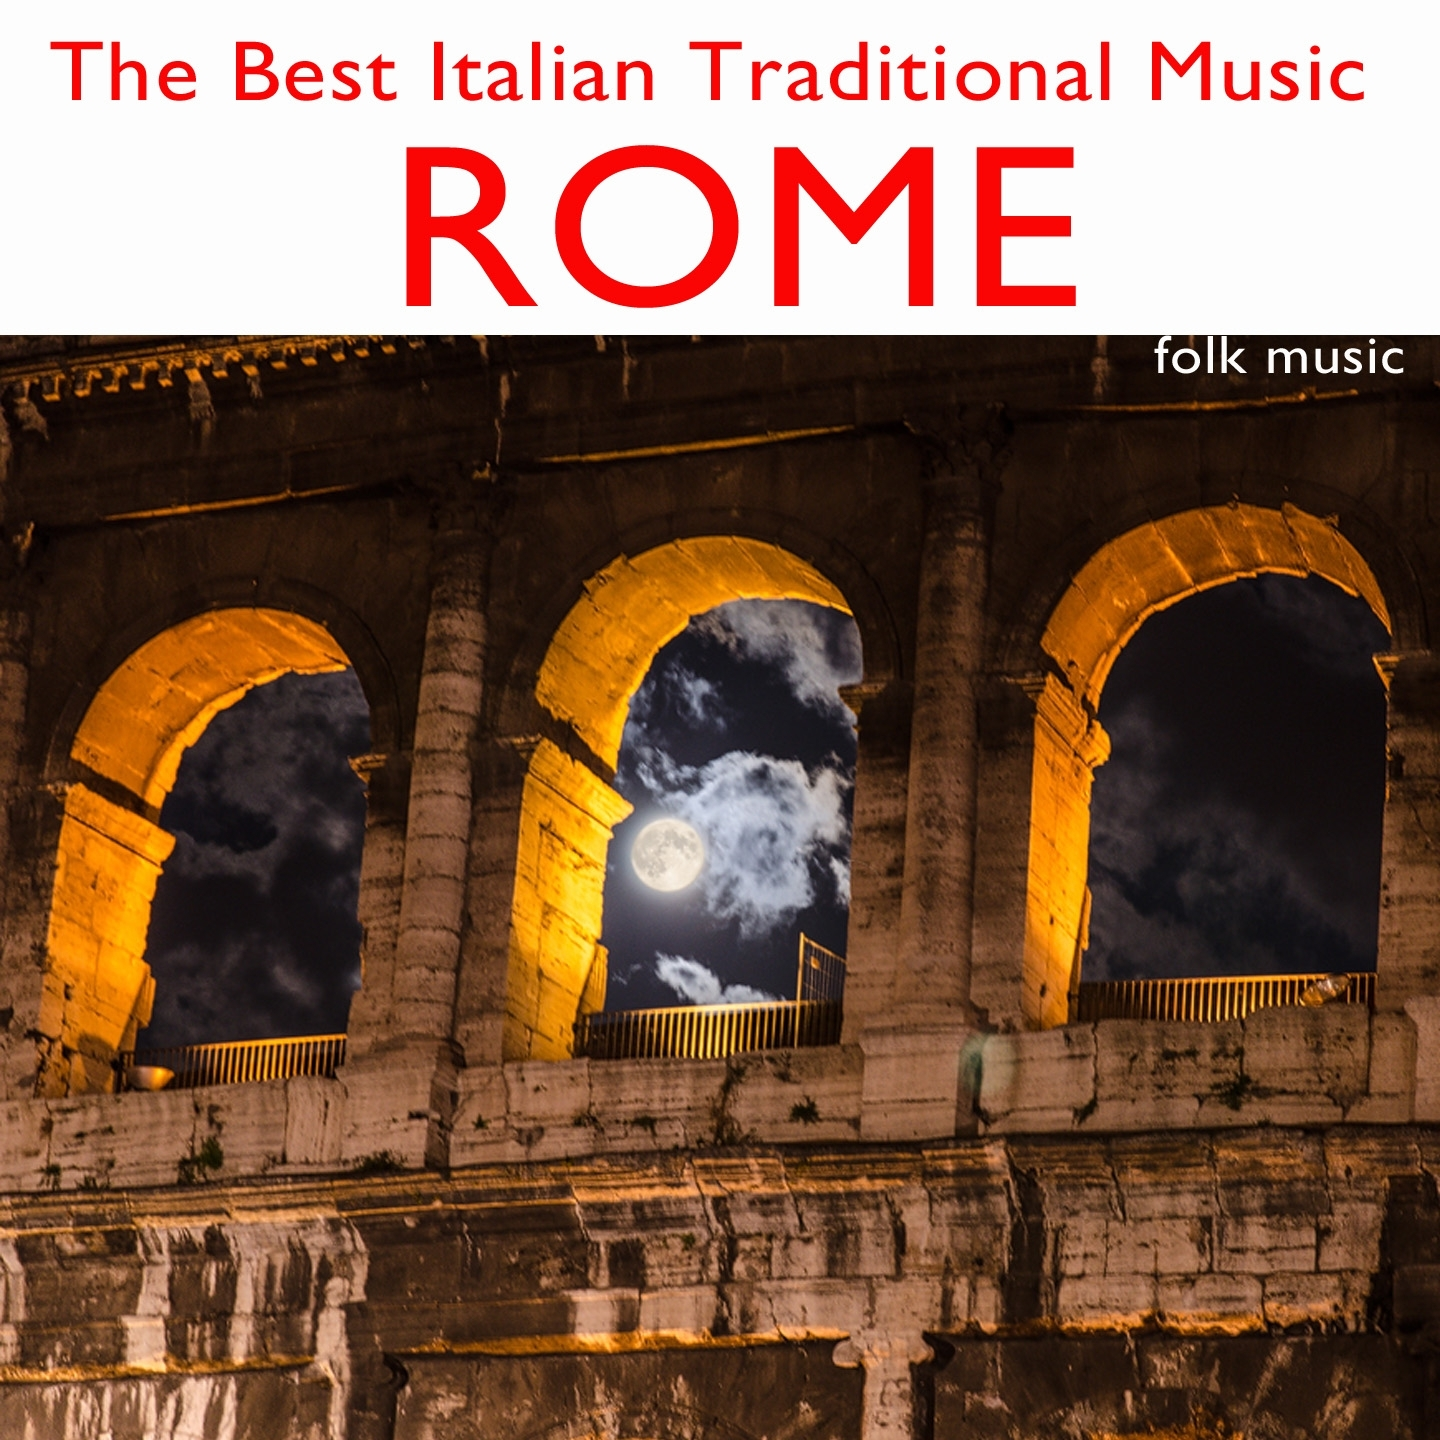 The Best Italian Traditional Music: Rome